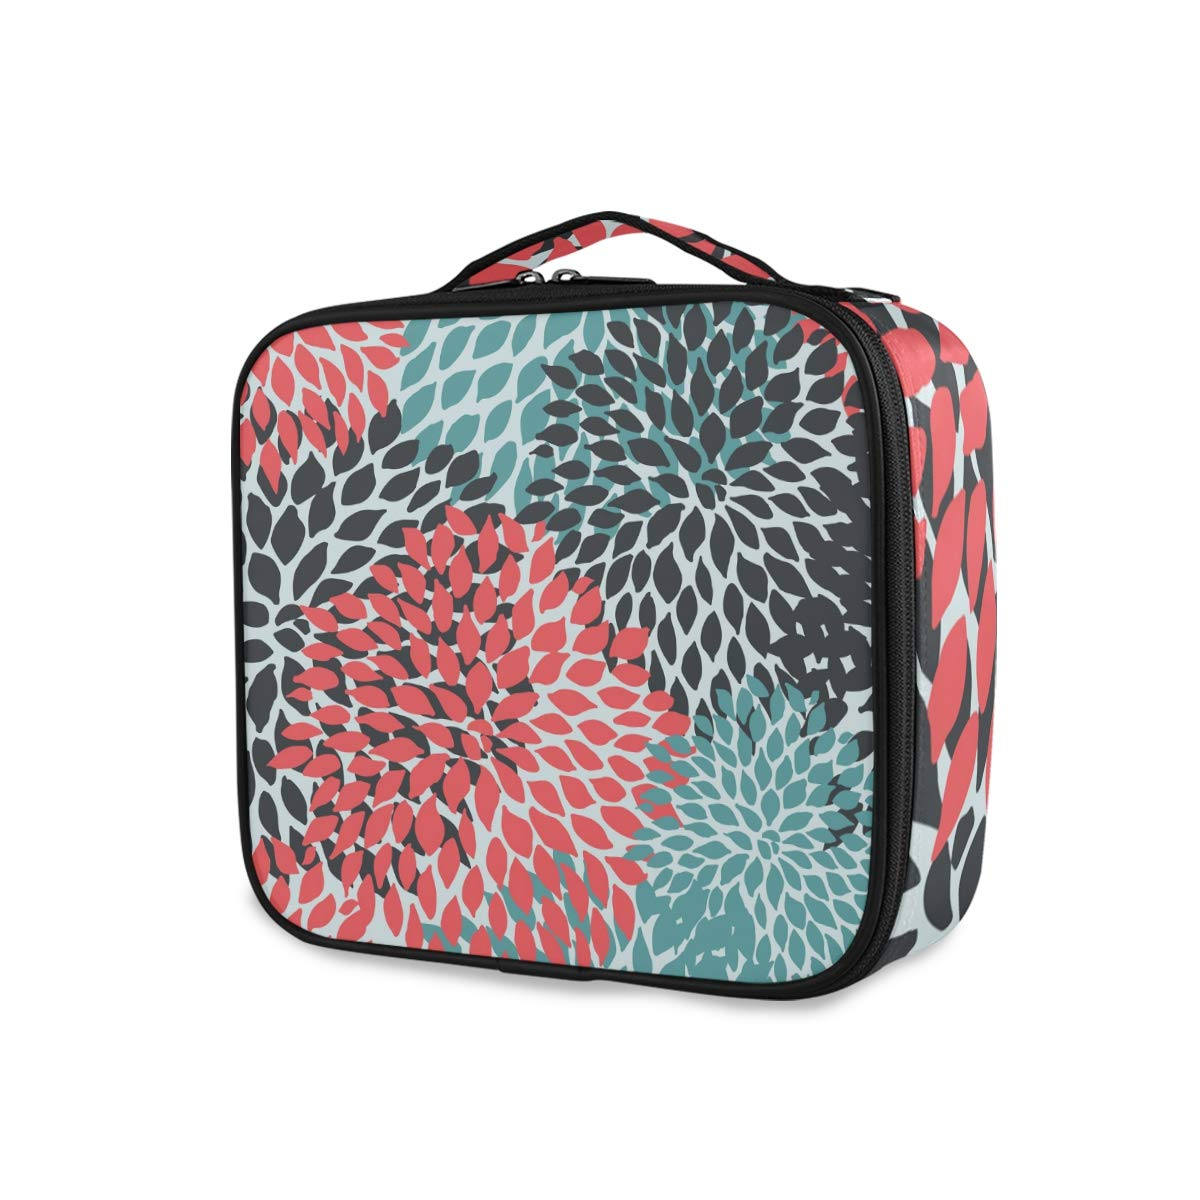 ALAZA Colorful Floral Red Blue Flower Dahlia Makeup Organizers Storage Travel Bag Toiletry Bags